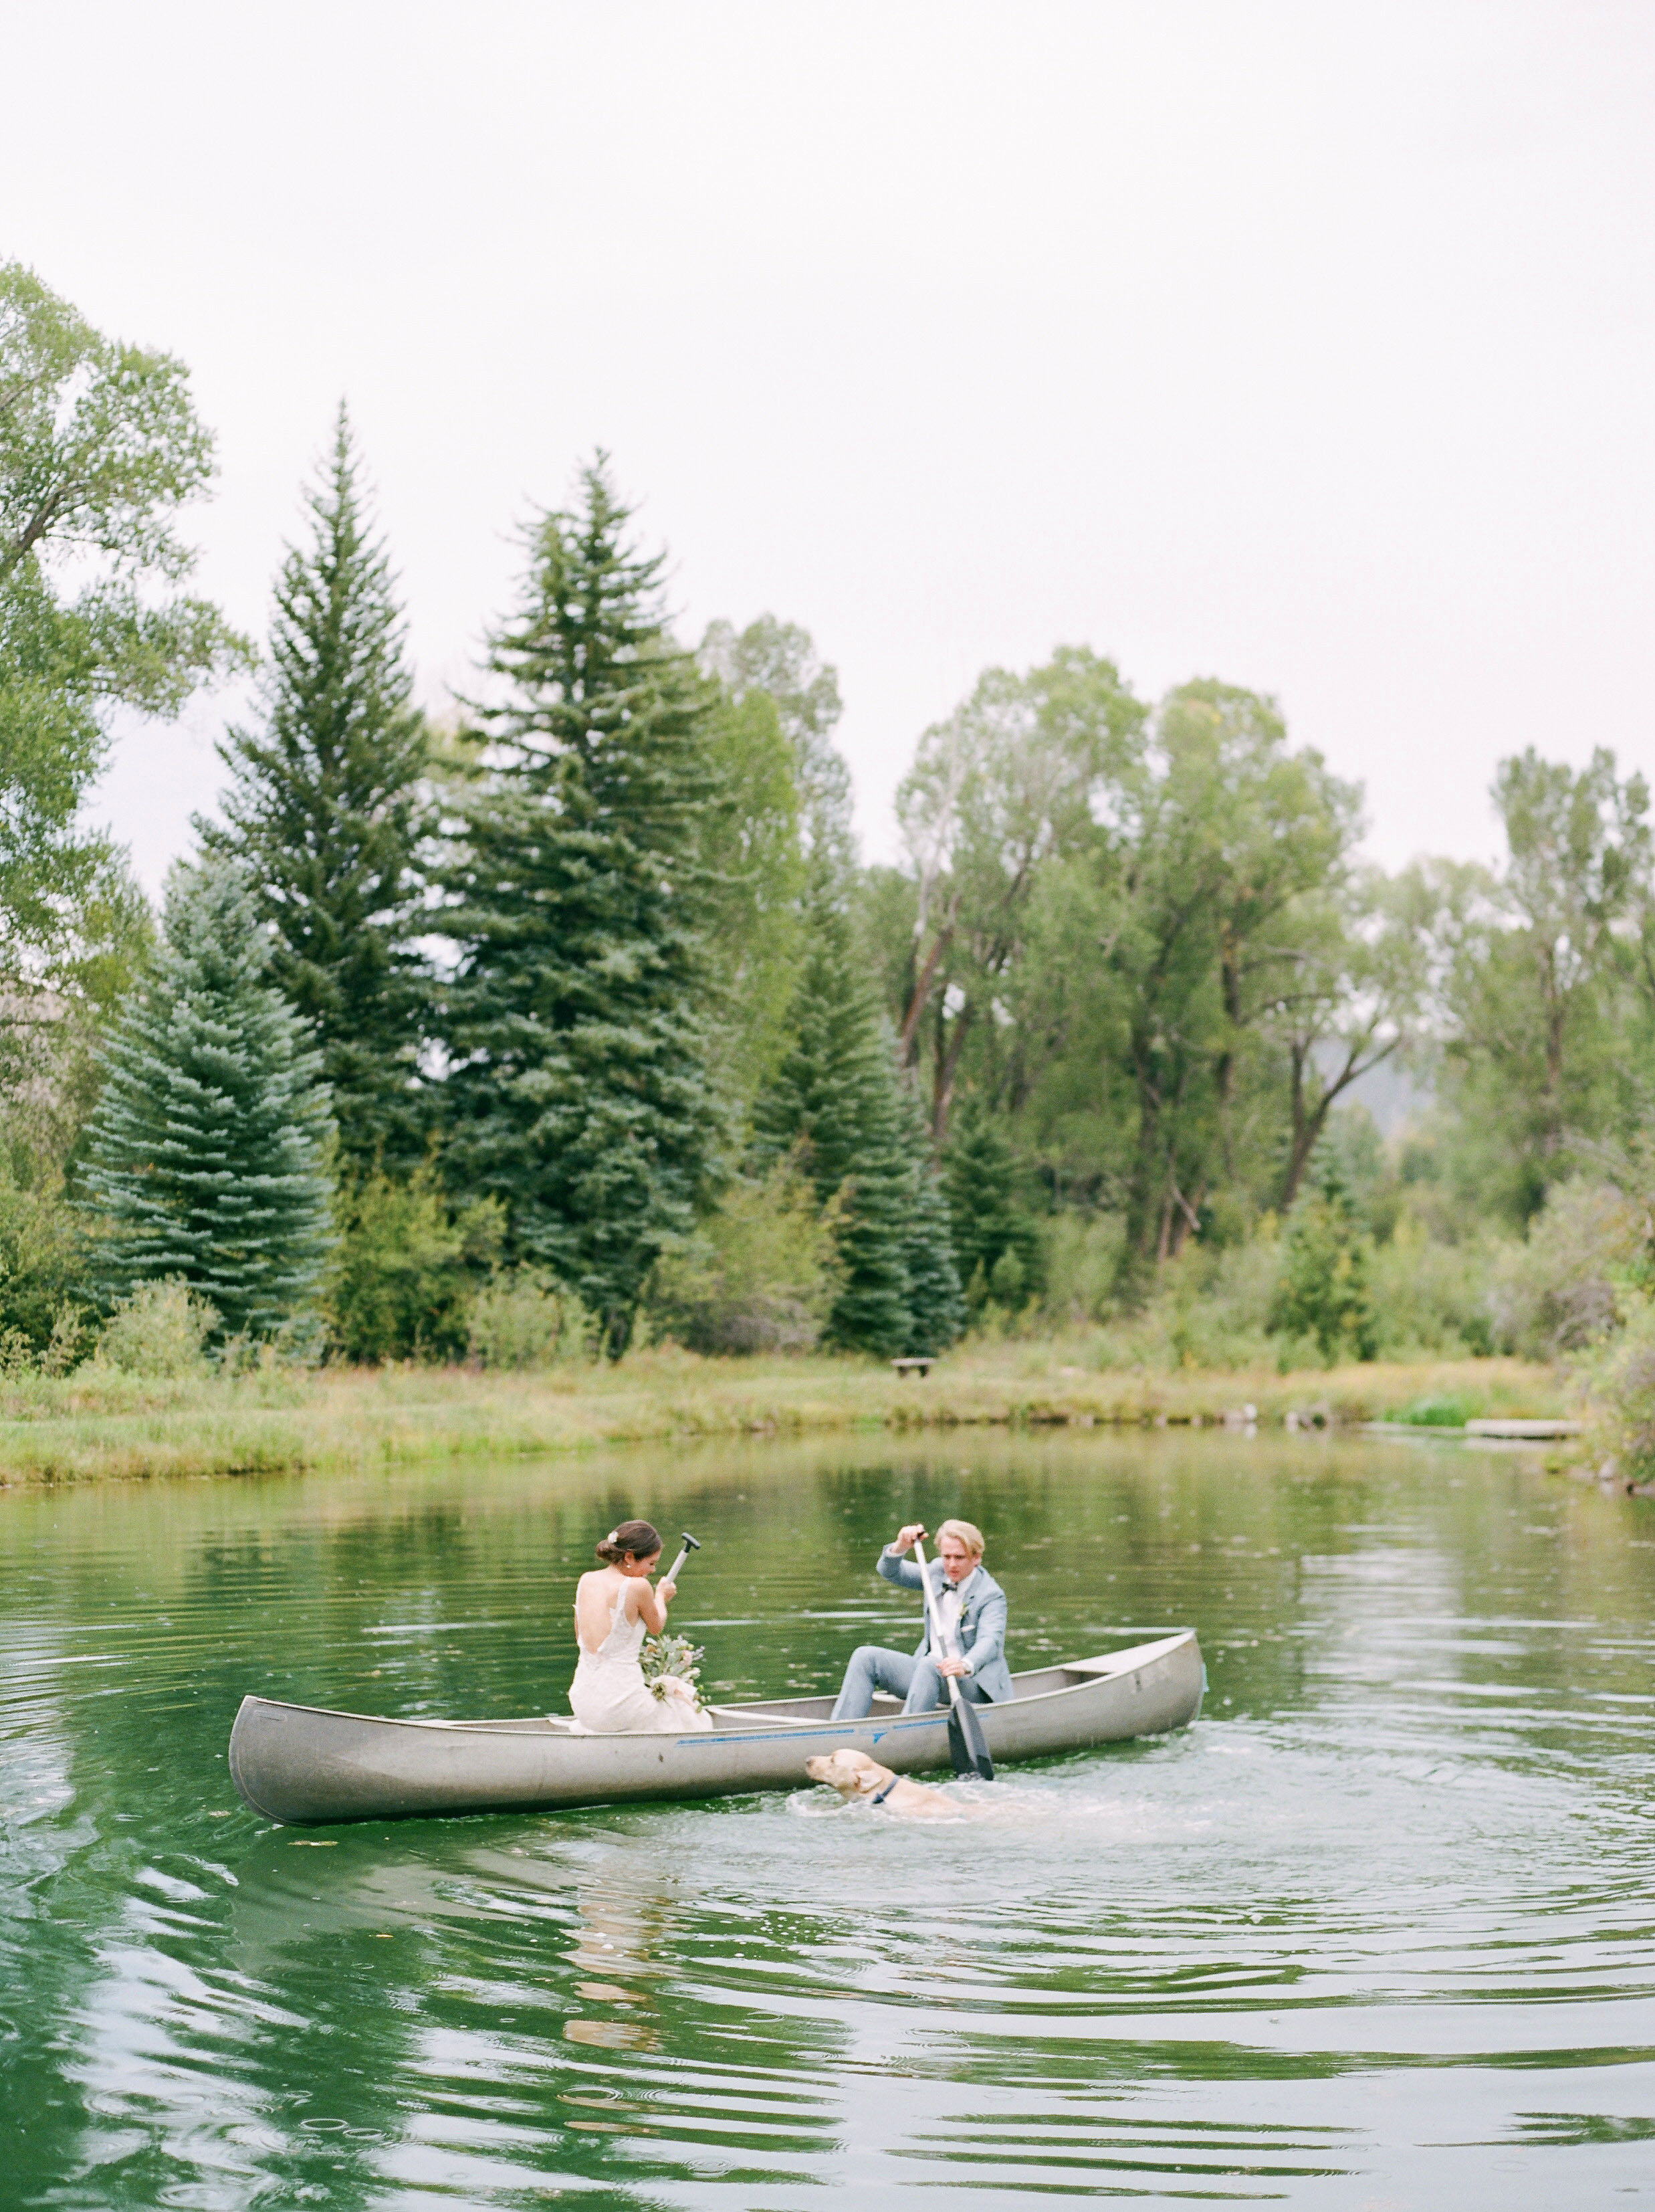 Canoe For Two (or Three)!